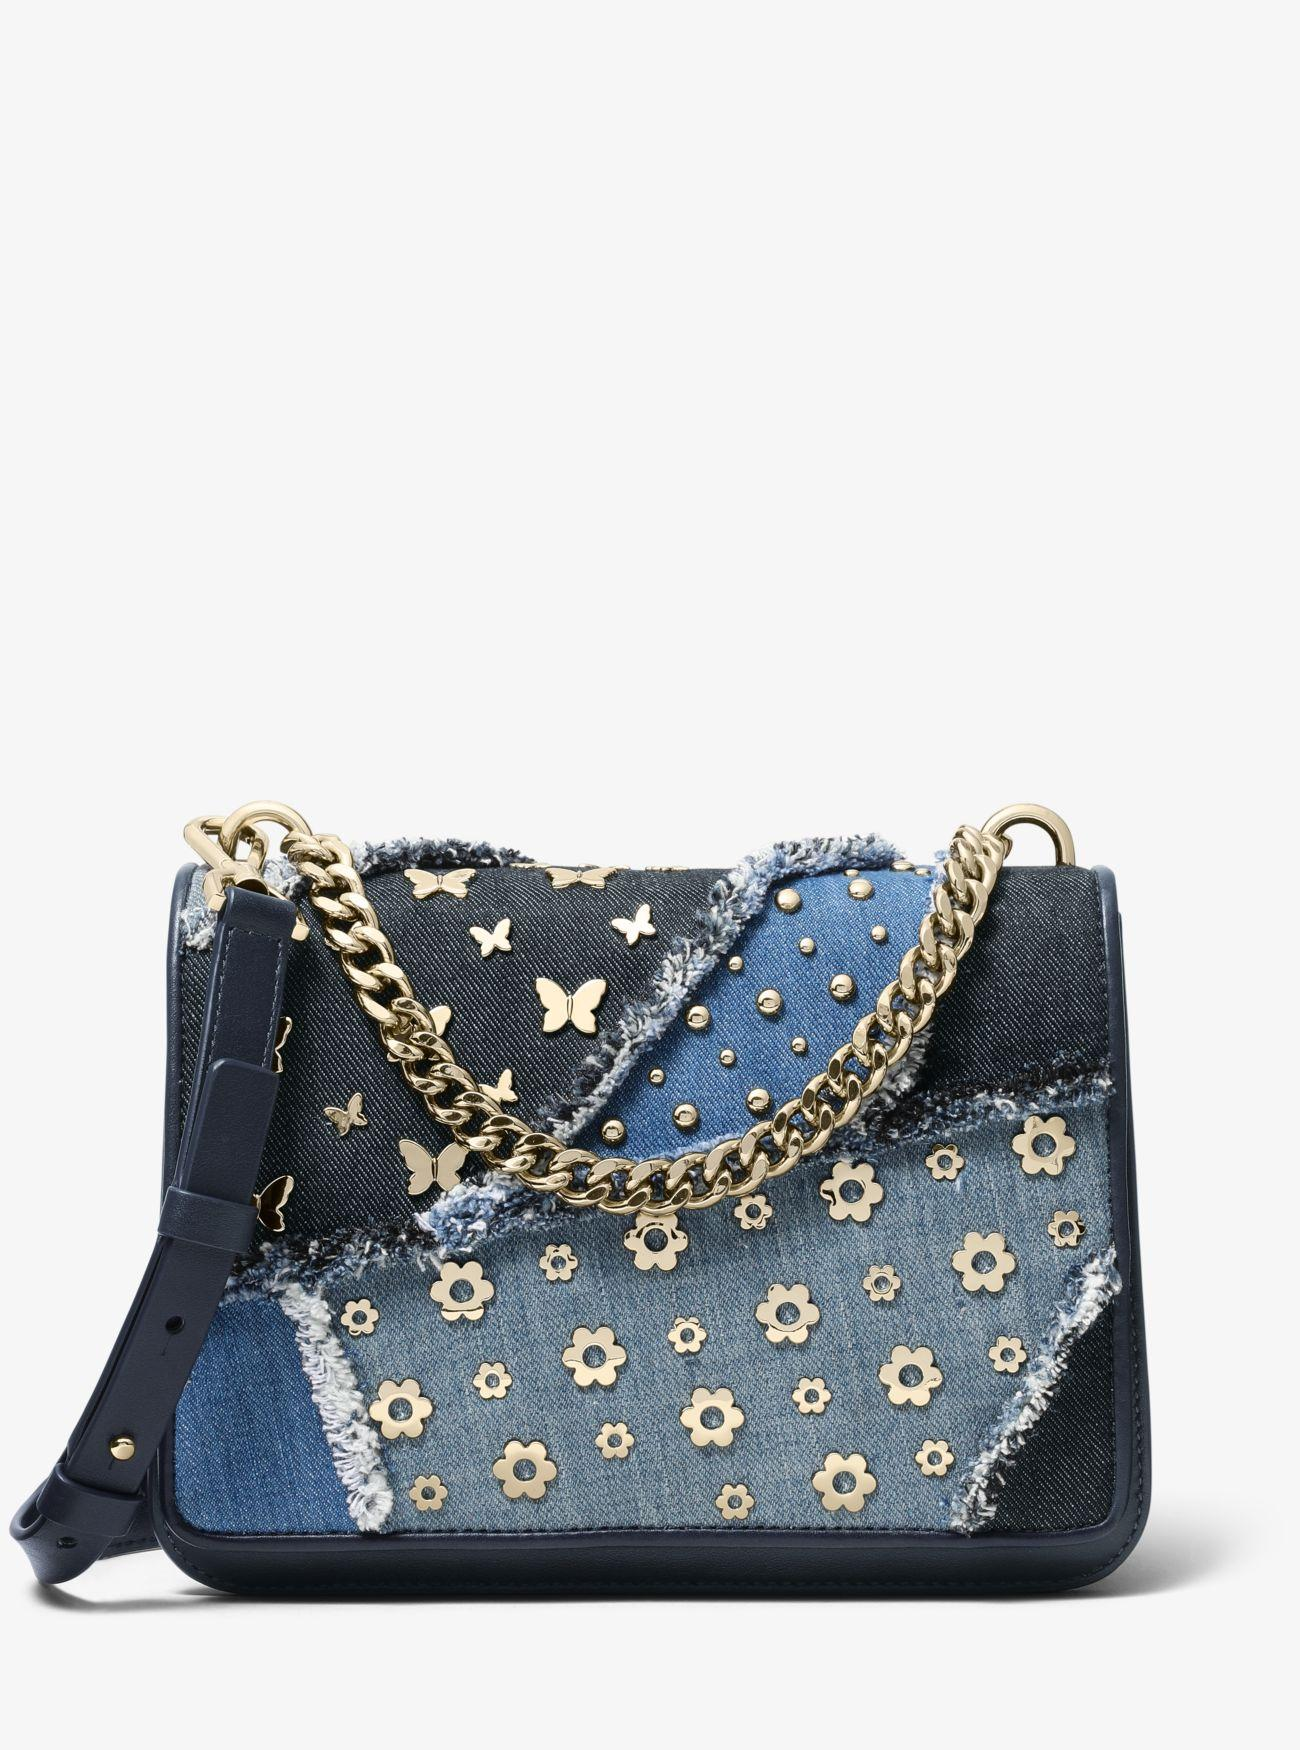 f4729902ce4d Michael Kors Mott Large Embellished Patchwork Crossbody Bag in Blue ...